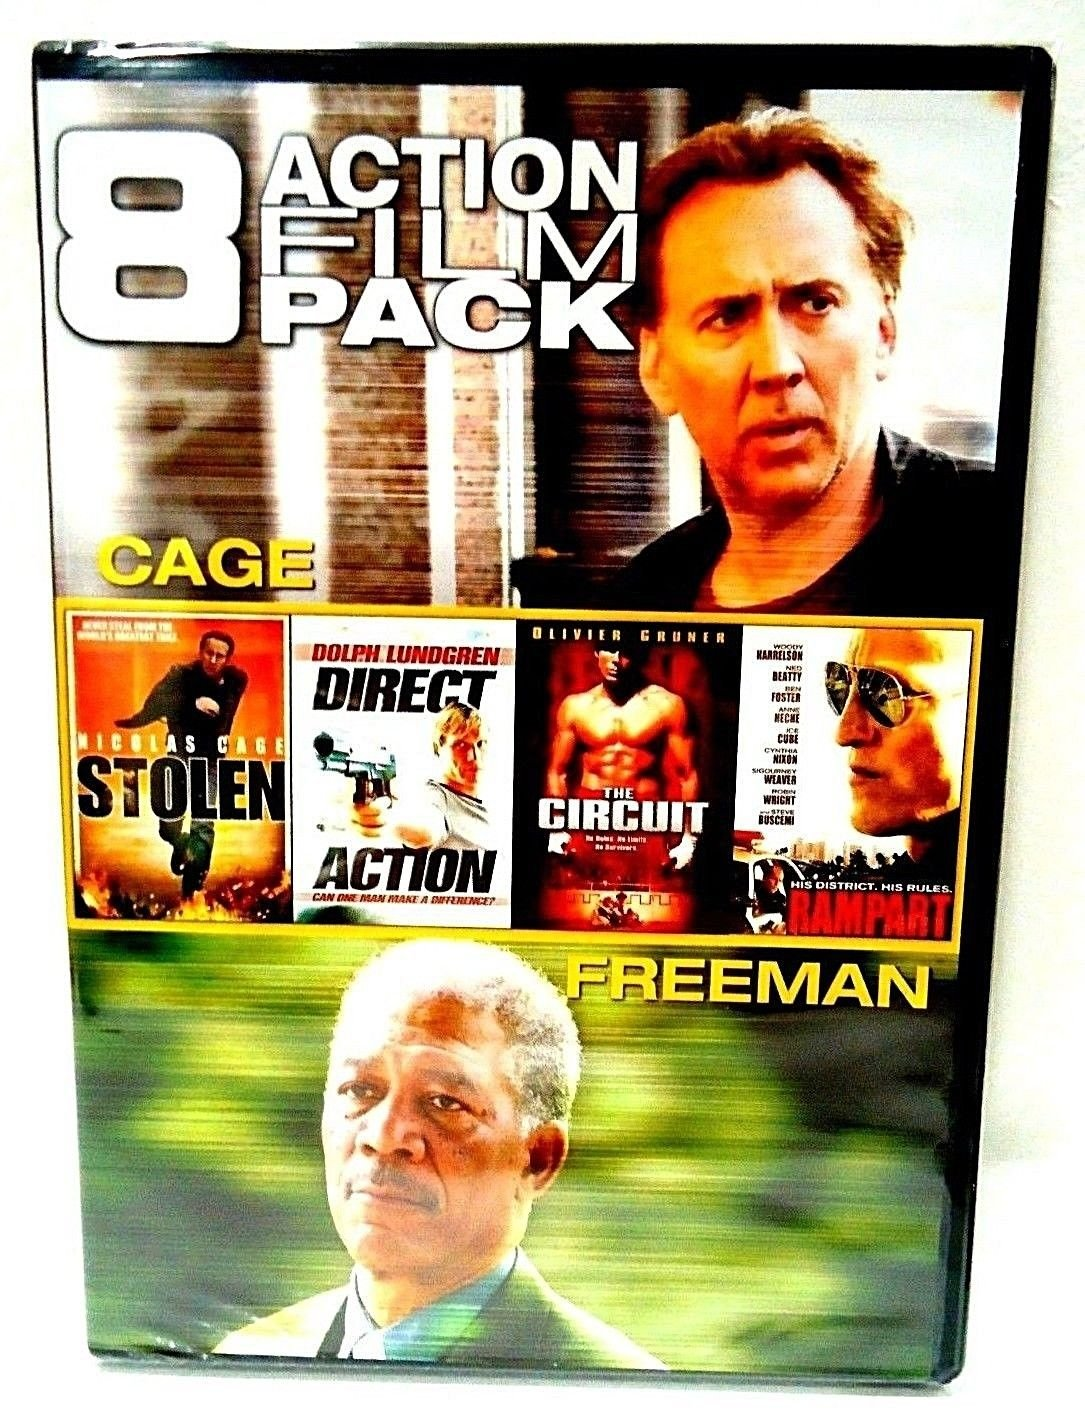 8 ACTION FILM PACK - DVD - CAGE - FREEMAN - STALLONE - BRAND NEW -  2-DISC SET